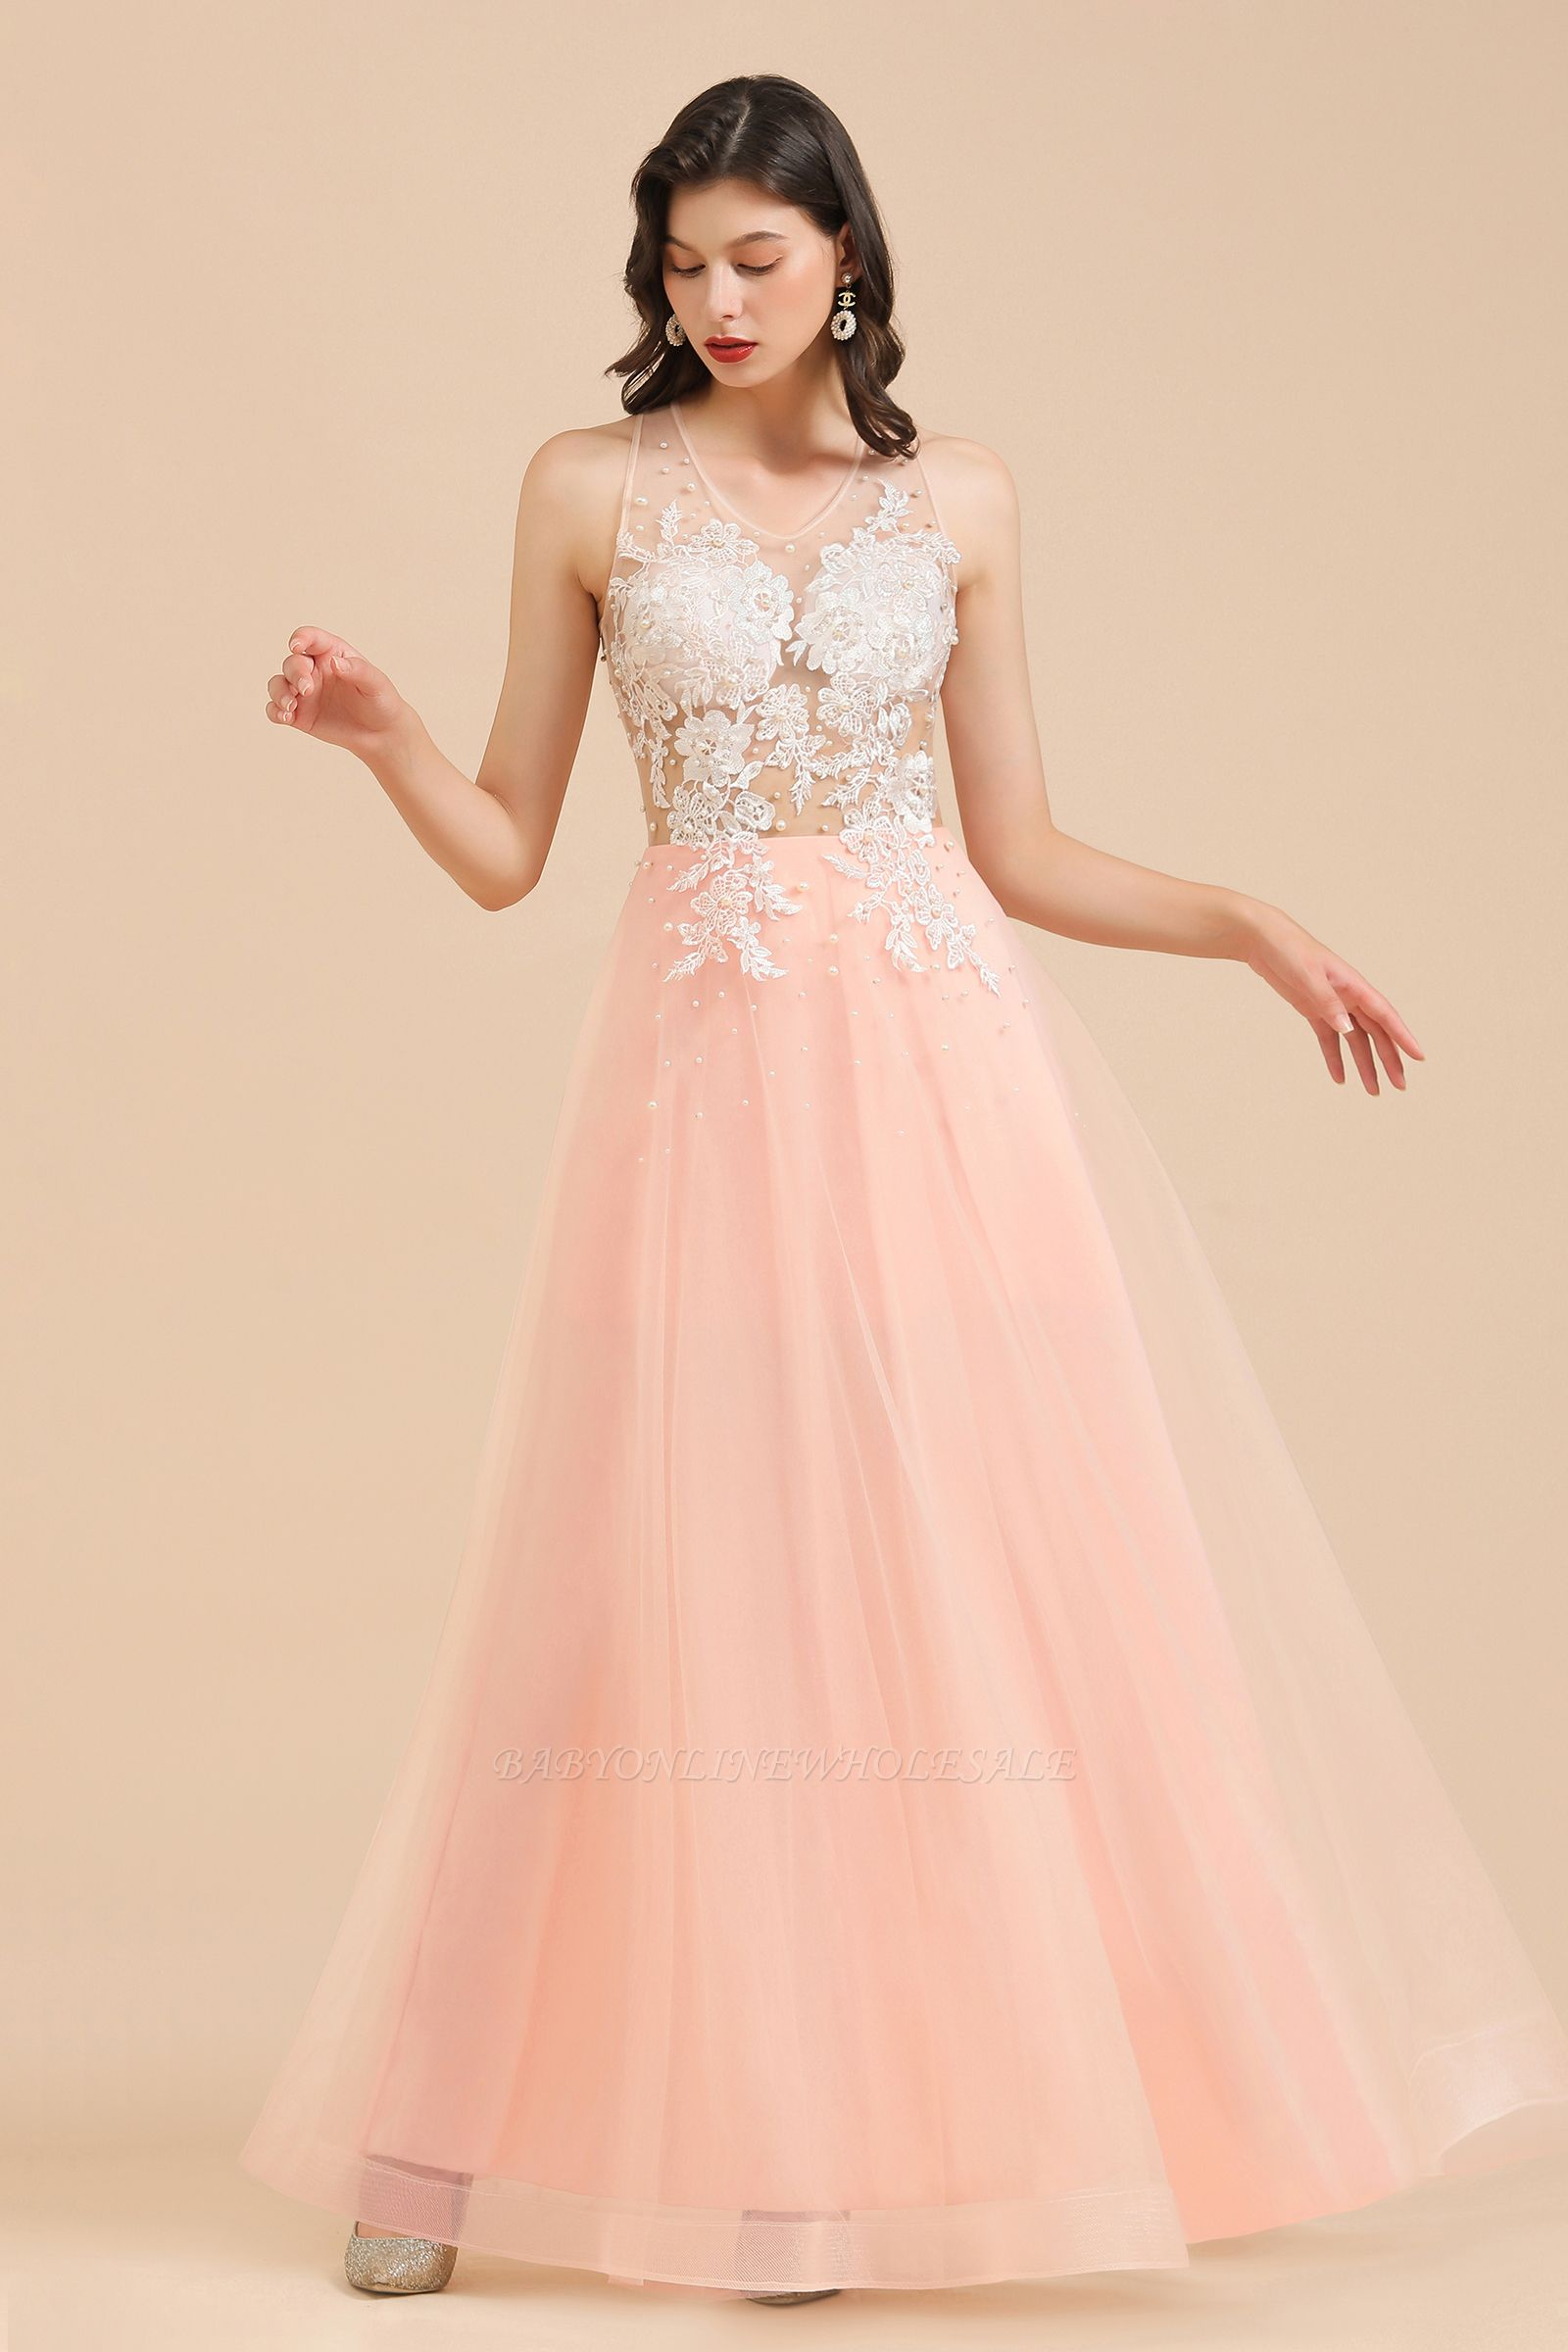 Simple Round neck Lace appliques Pink A-line evening dress